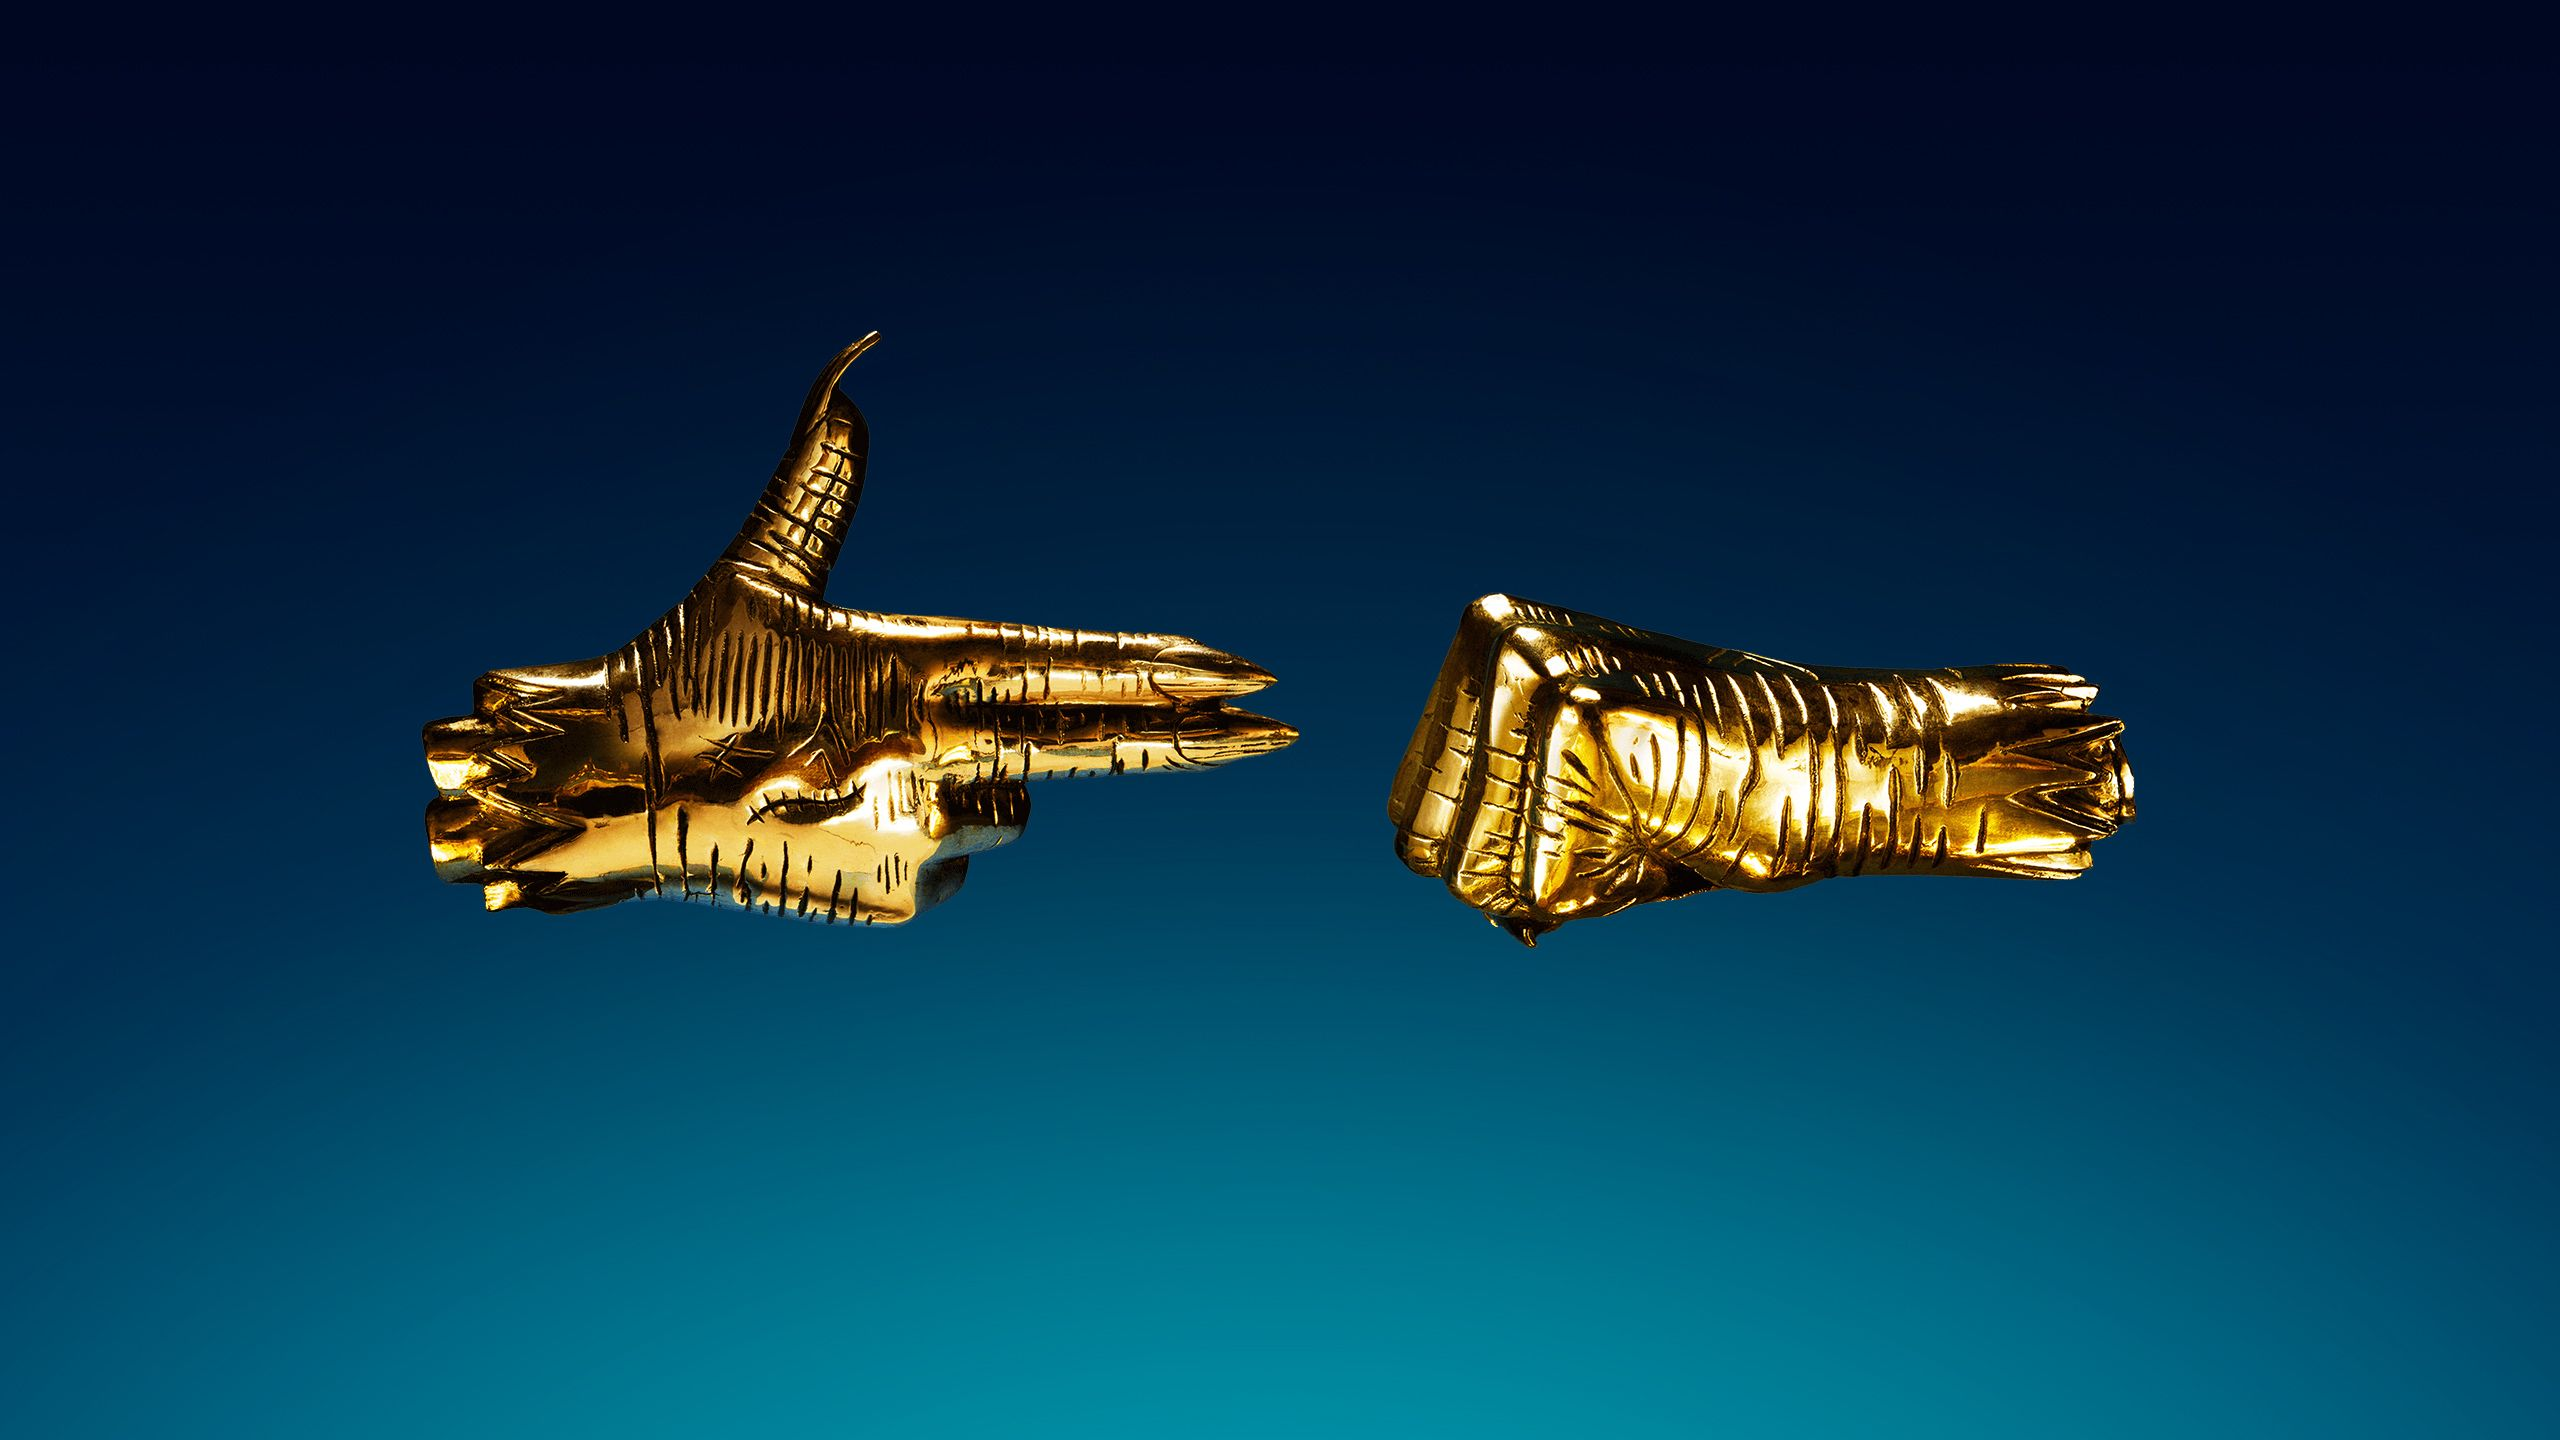 3 Run The Jewels Wallpapers Top Free 3 Run The Jewels